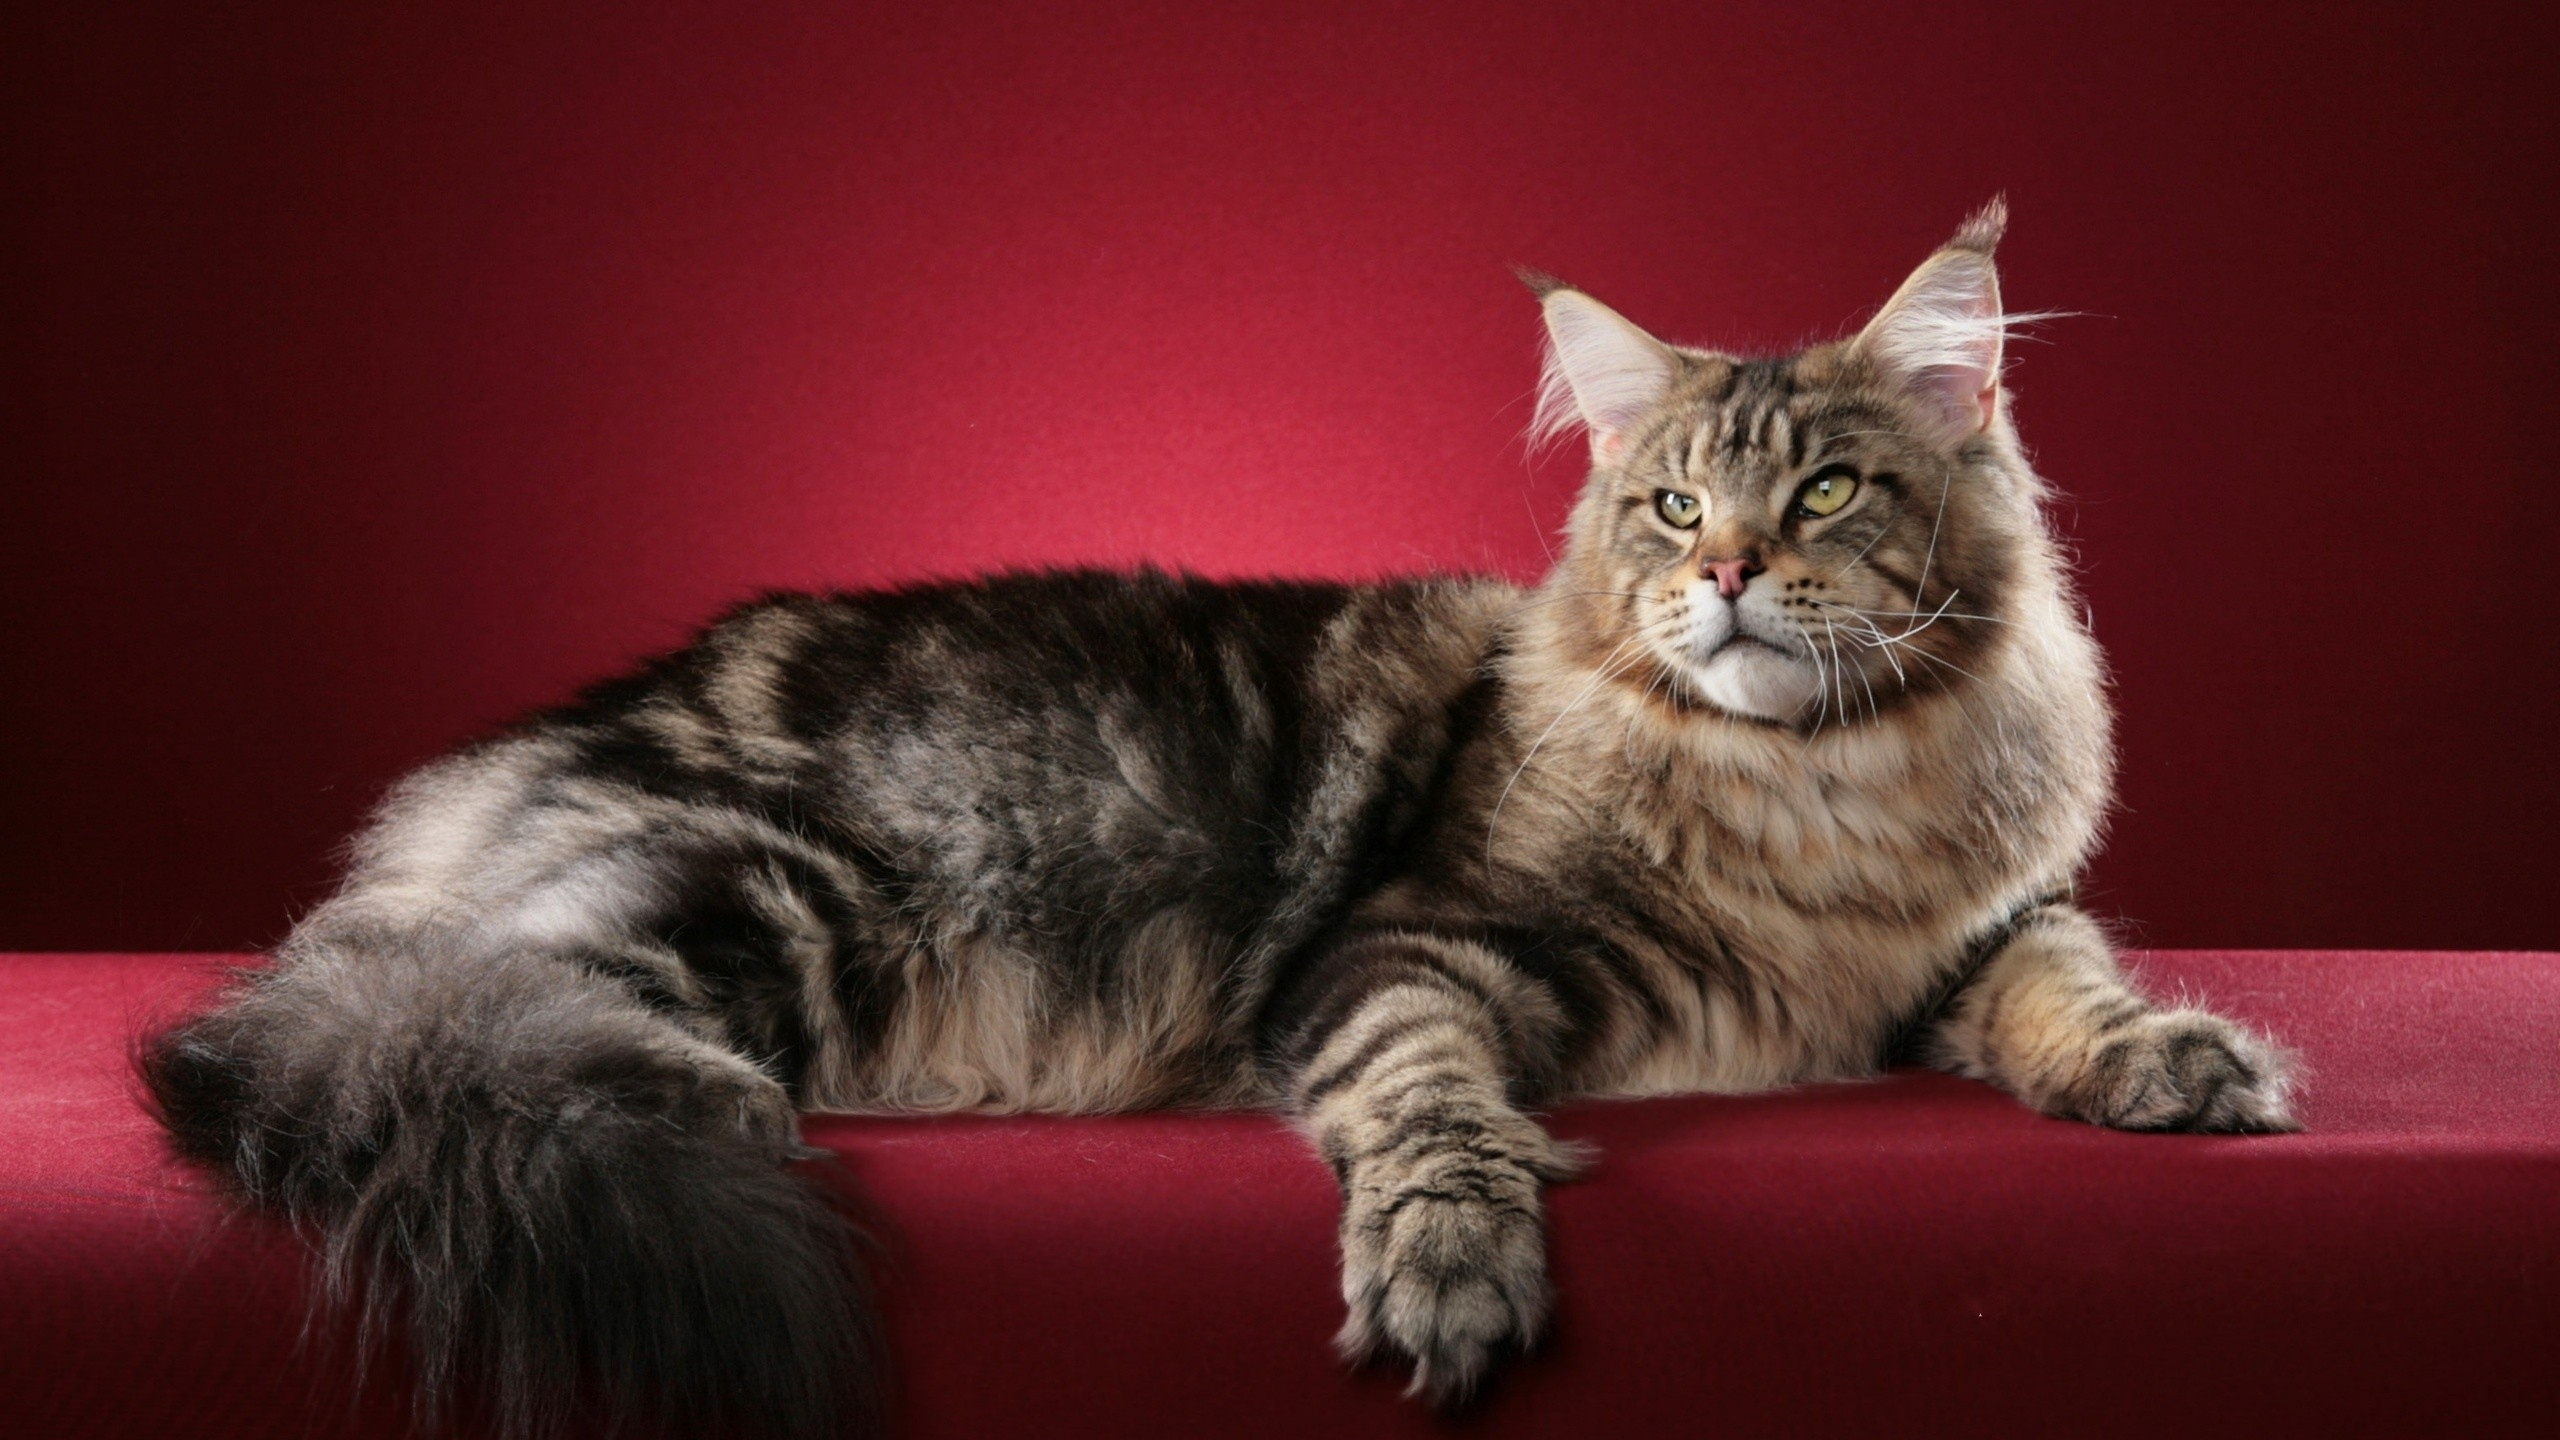 Maine Coon Cat Wallpapers 040 High Resolution 2560 X 1440 - Picturegallerywalls